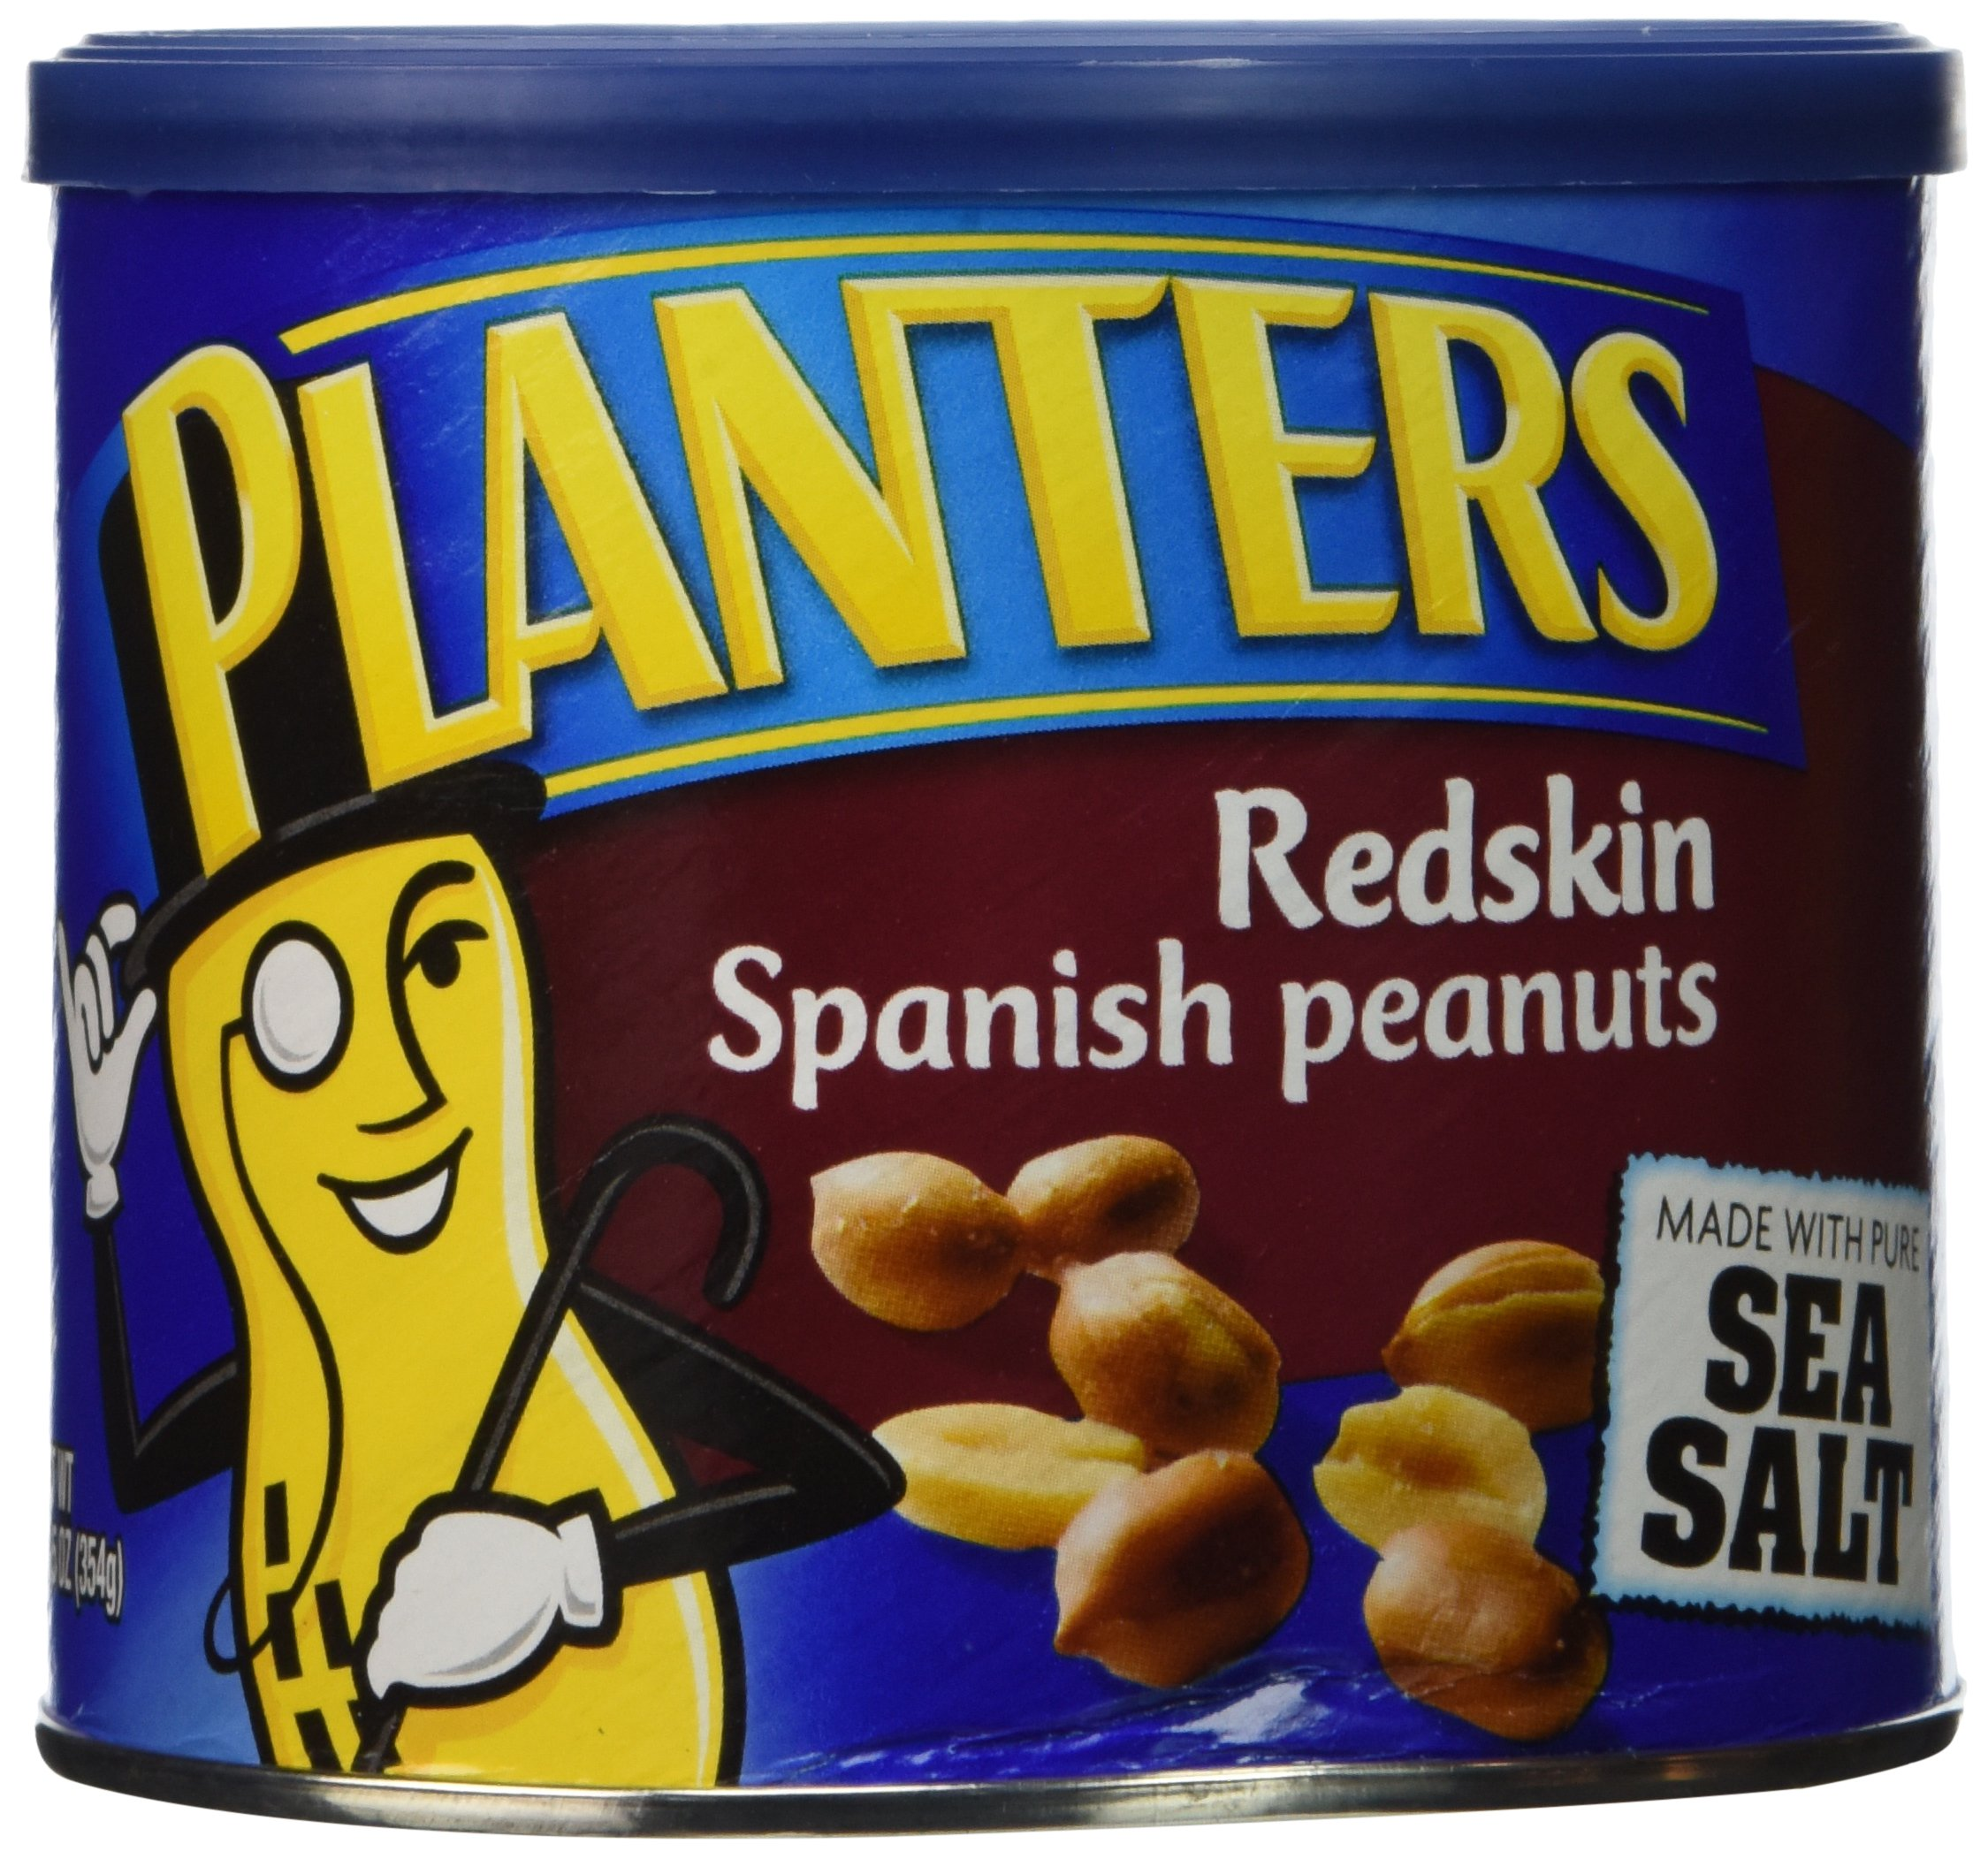 Planters Redskin Spanish Peanuts Sea Salt, 12.5 OZ (Pack of 6)